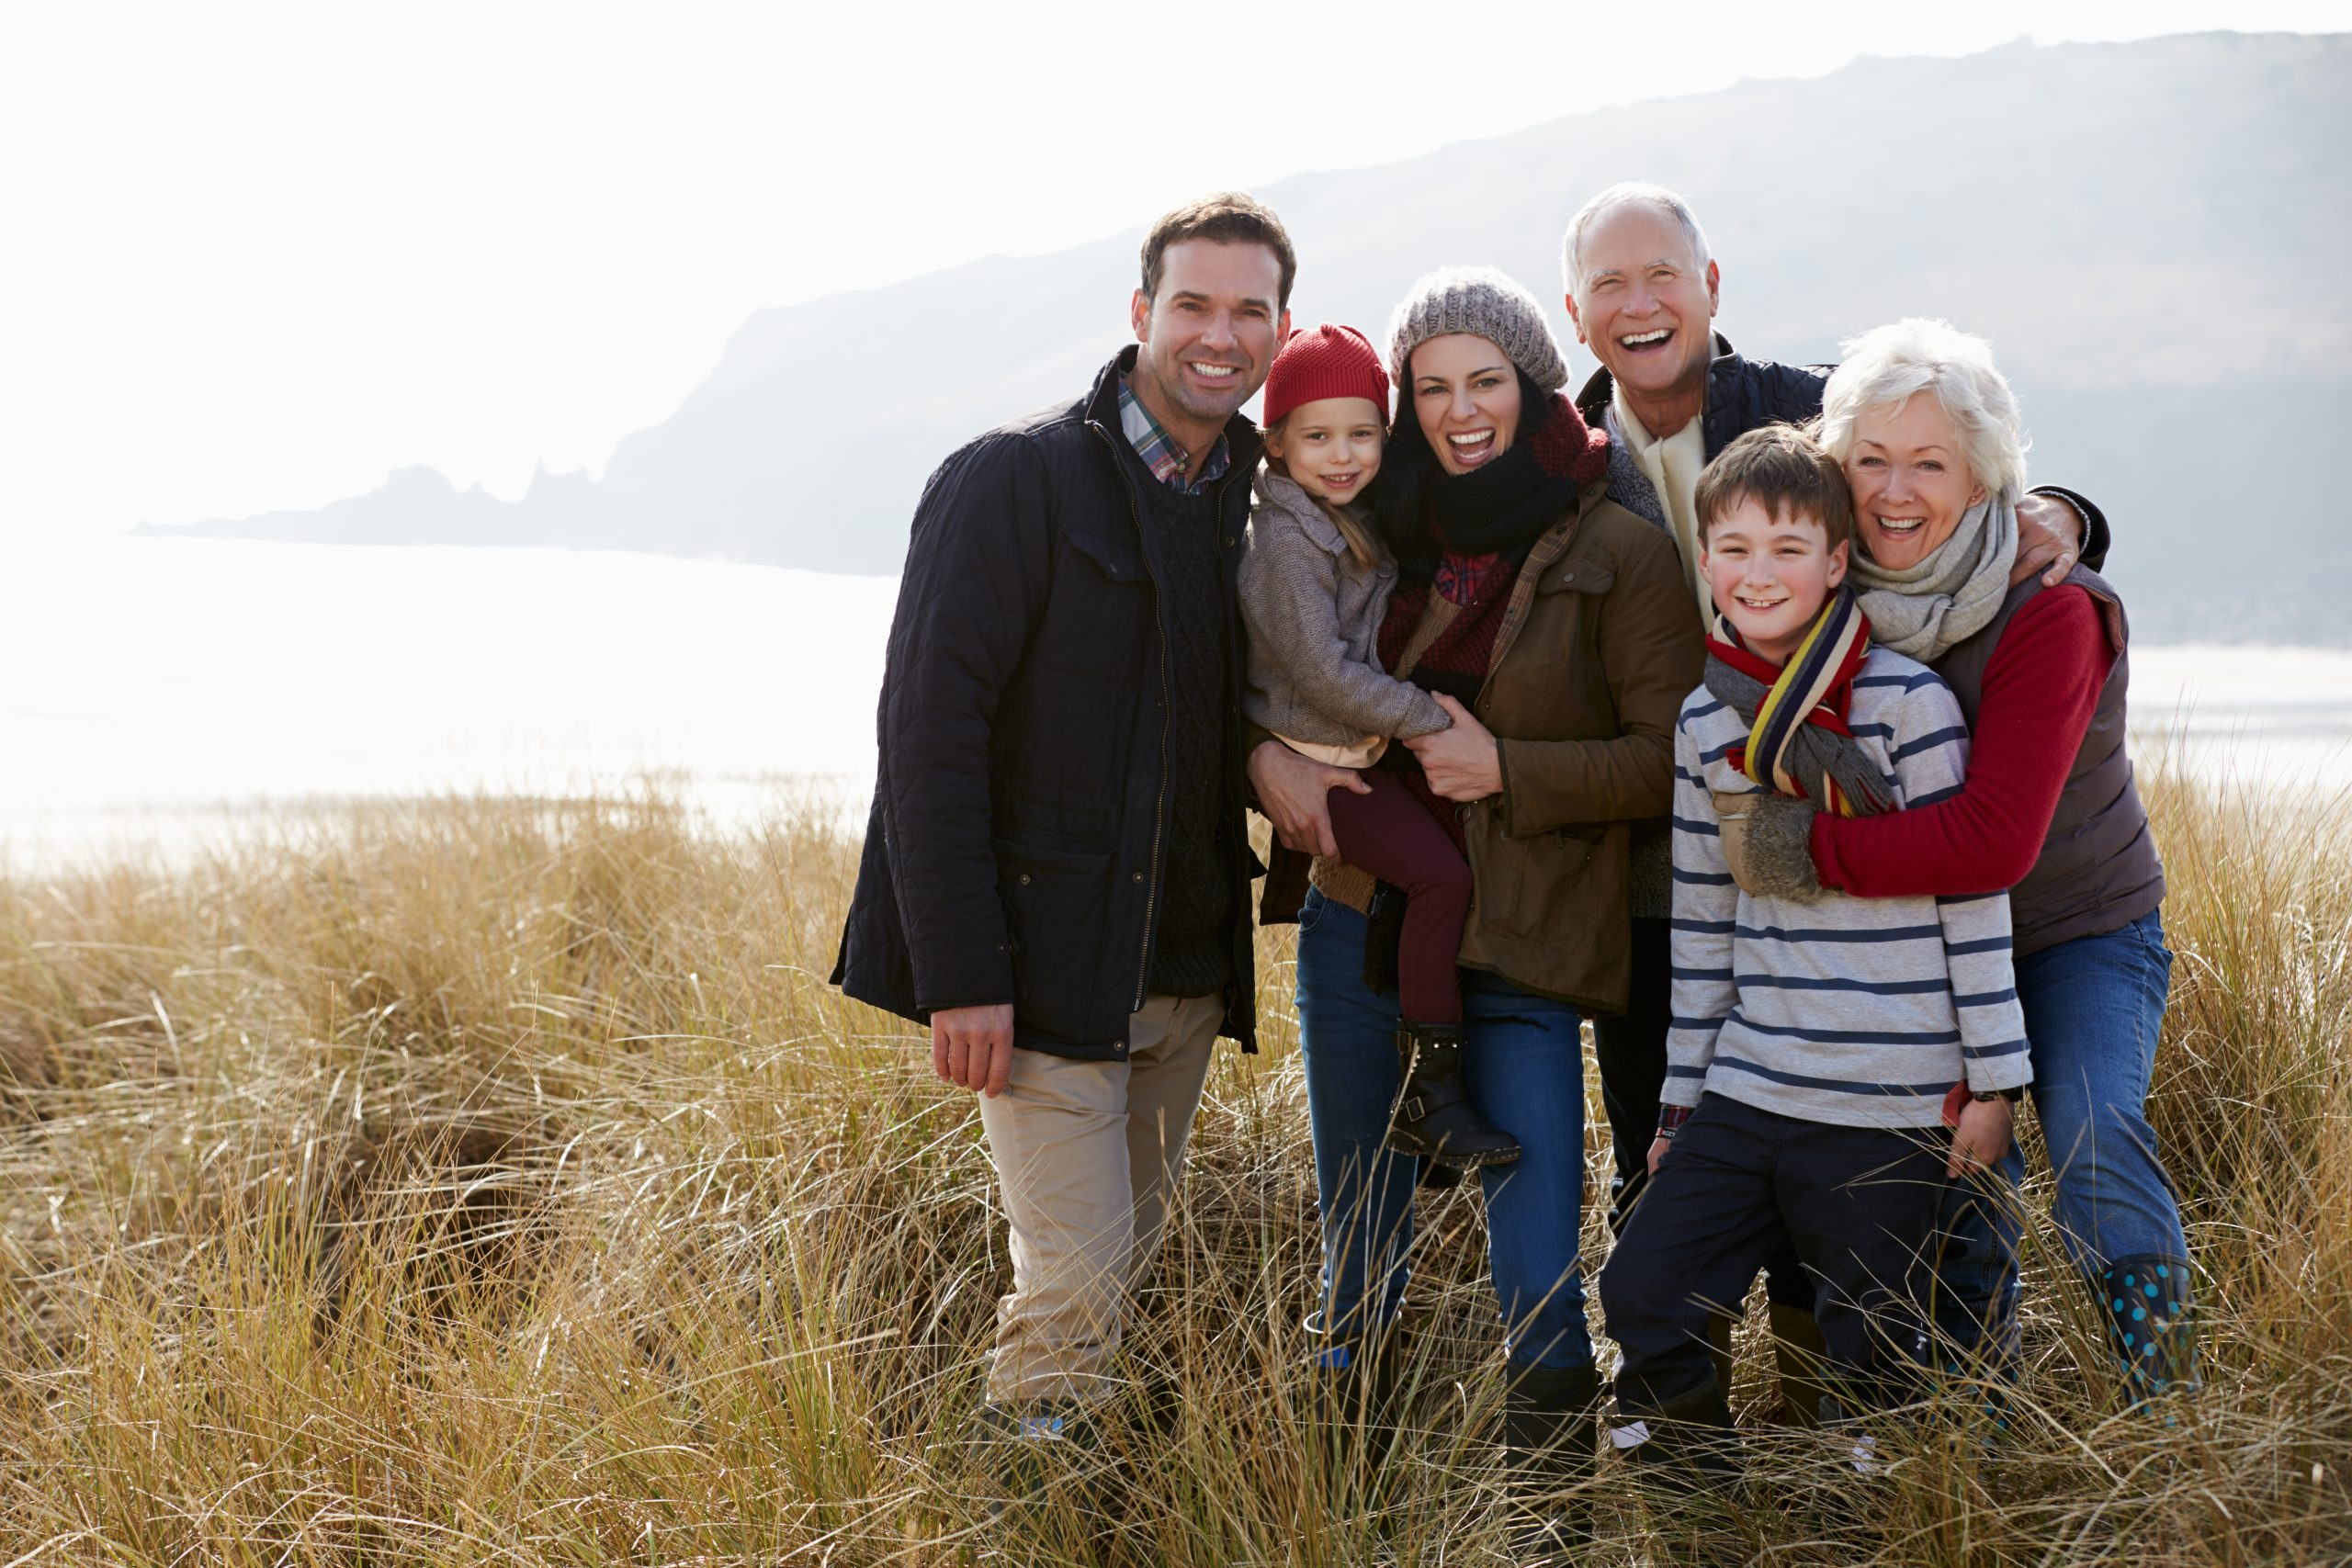 brown lawyers blog, how to stop the inheritance, happy family in a field